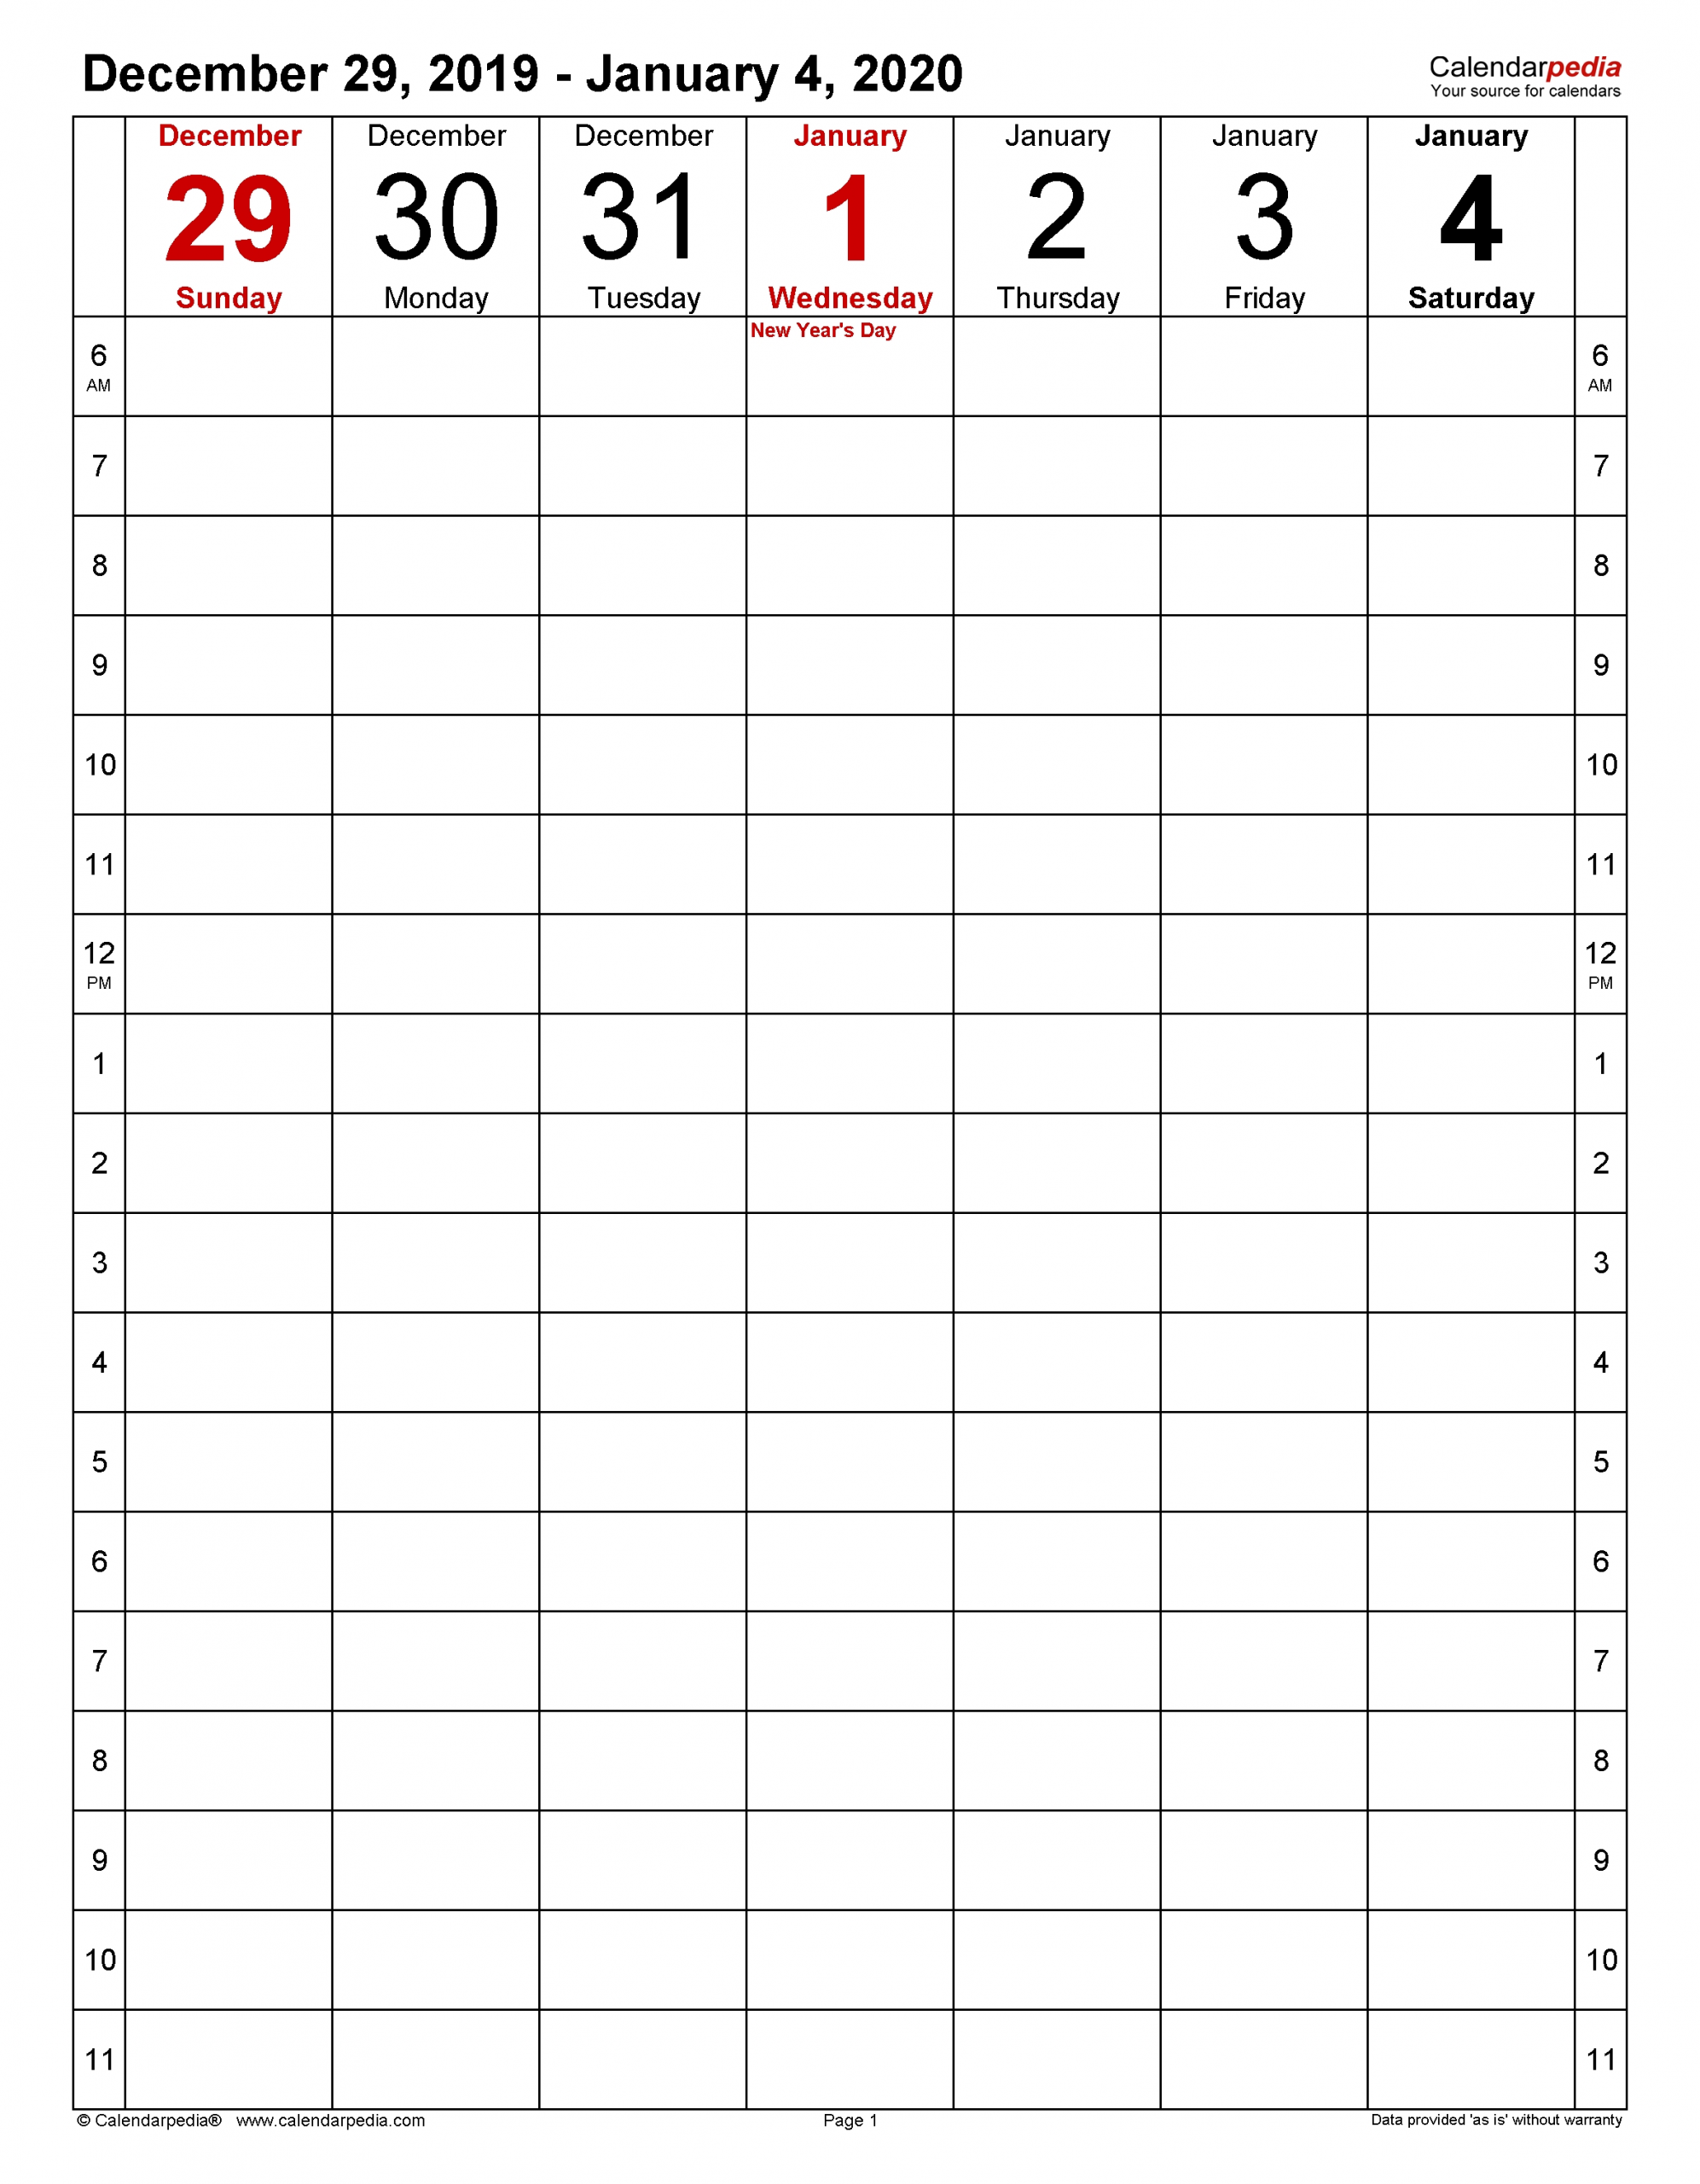 Weekly Calendars 2020 For Word - 12 Free Printable Templates intended for Printable Chalander With Space To Right For 2020